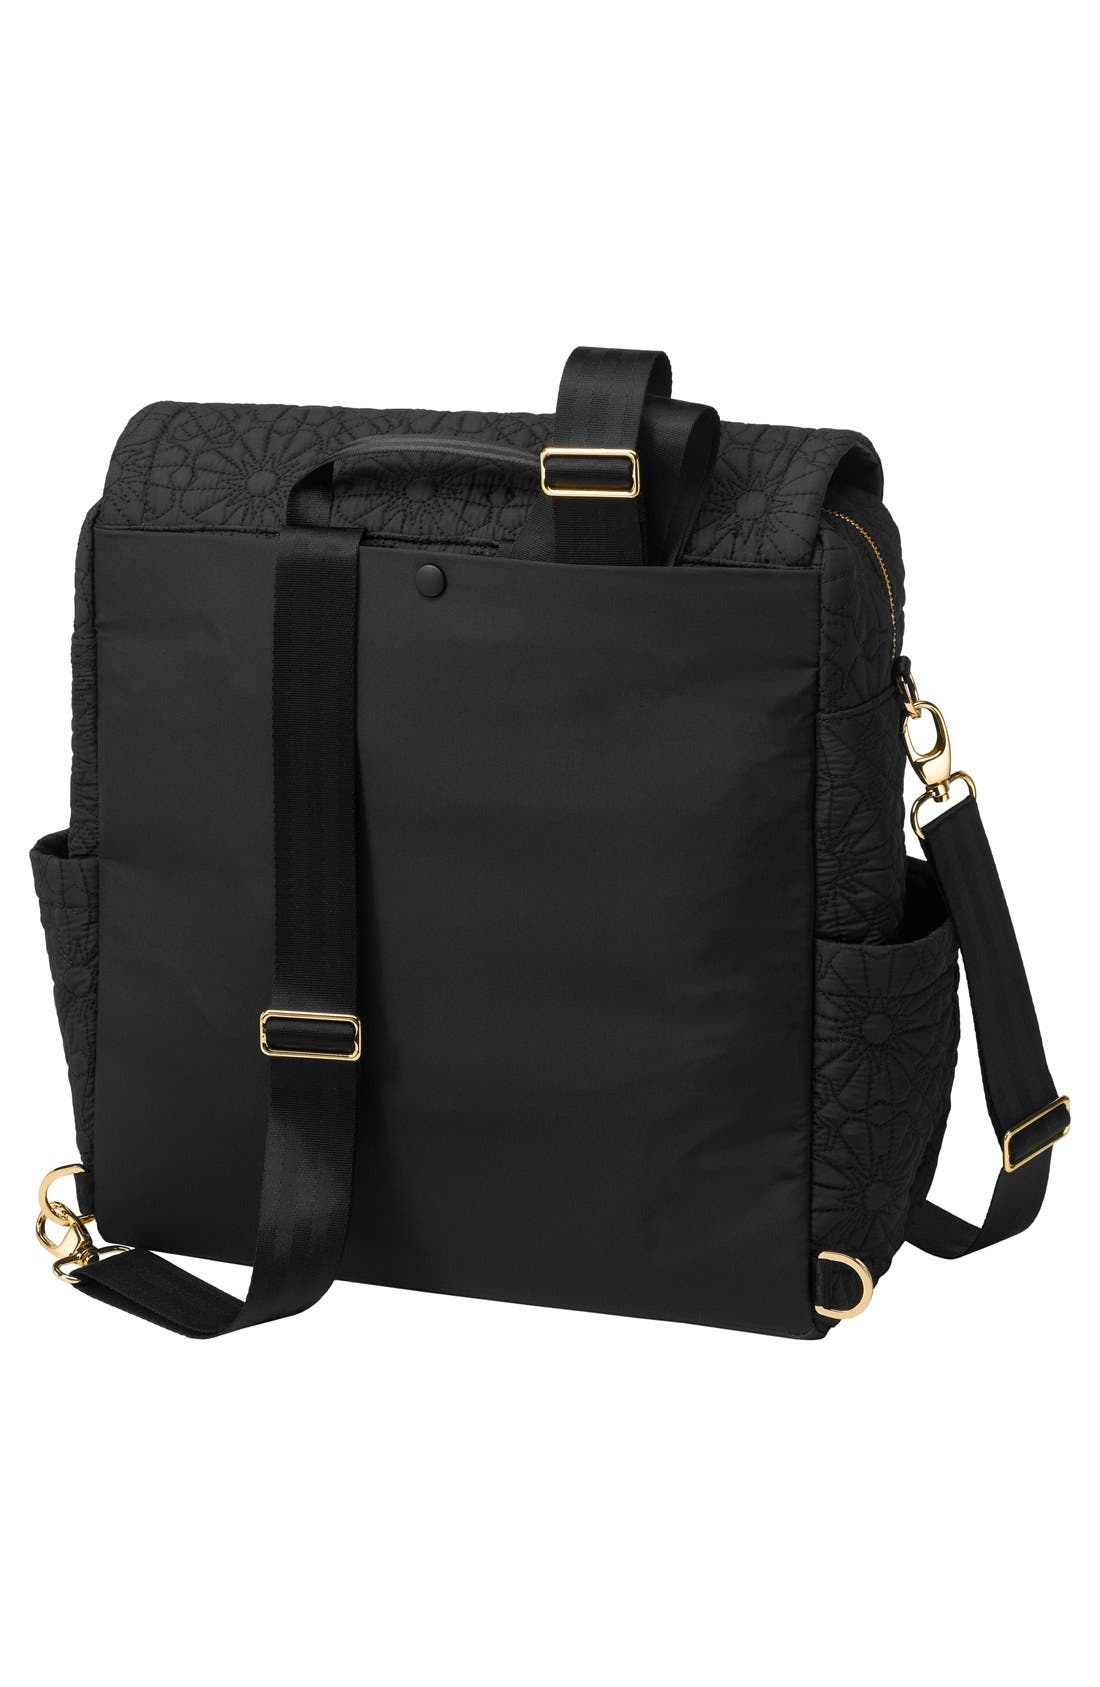 'Embossed Boxy' Backpack Diaper Bag,                             Alternate thumbnail 2, color,                             Bedford Special Edition